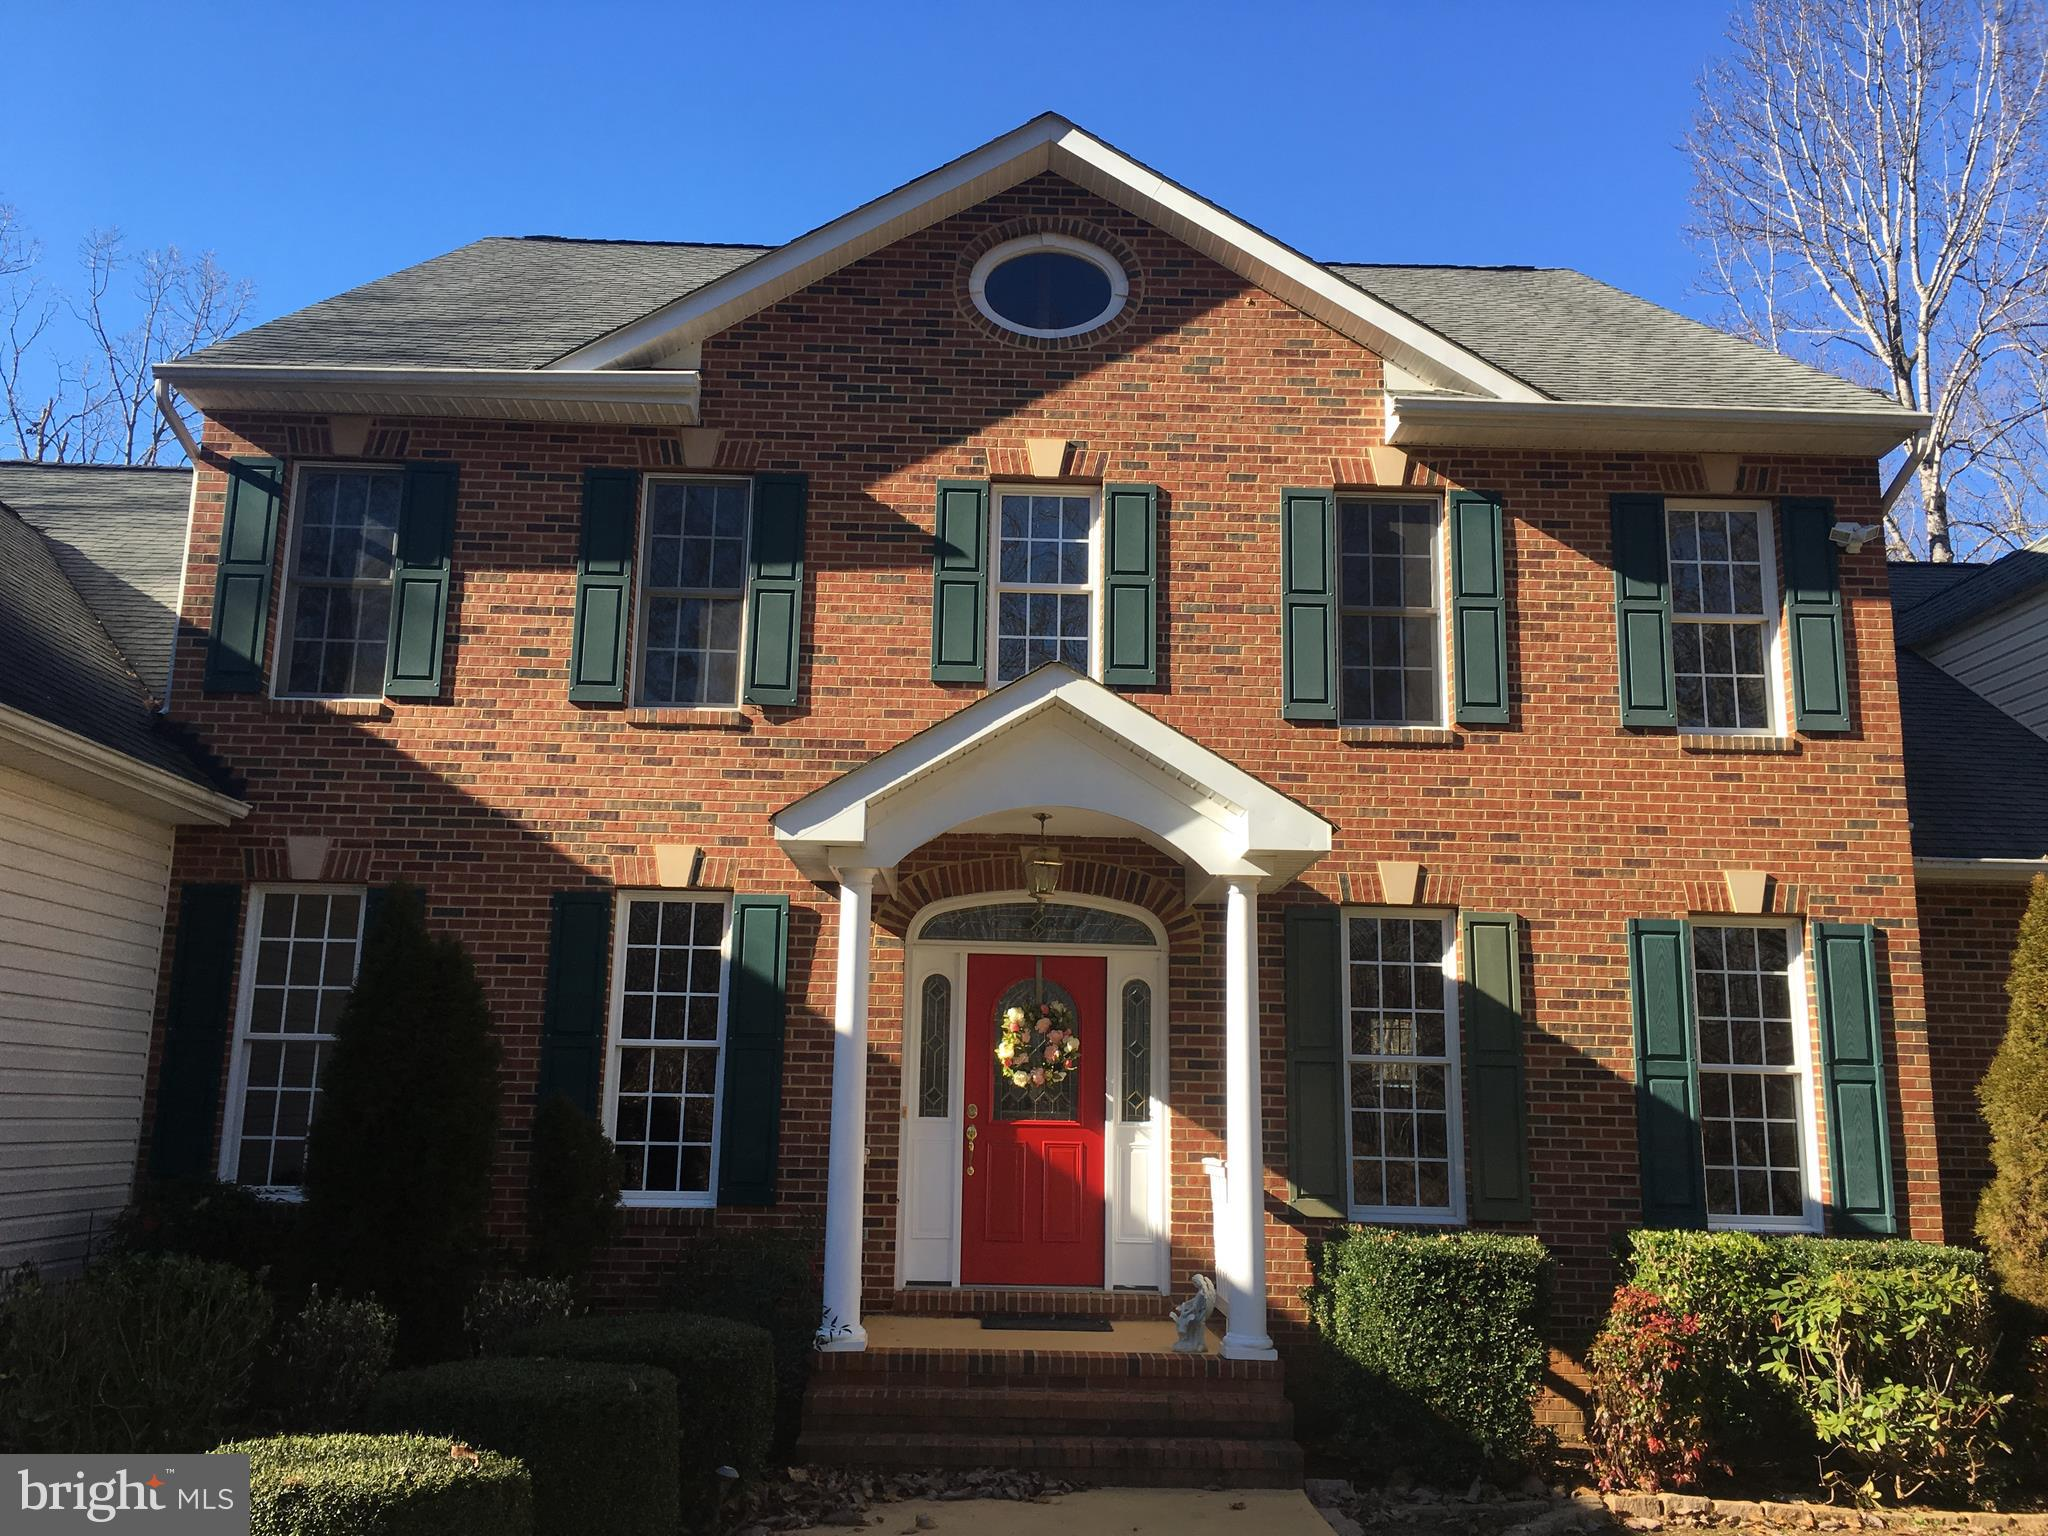 6142 WALKER'S HOLLOW, LOCUST GROVE, VA 22508